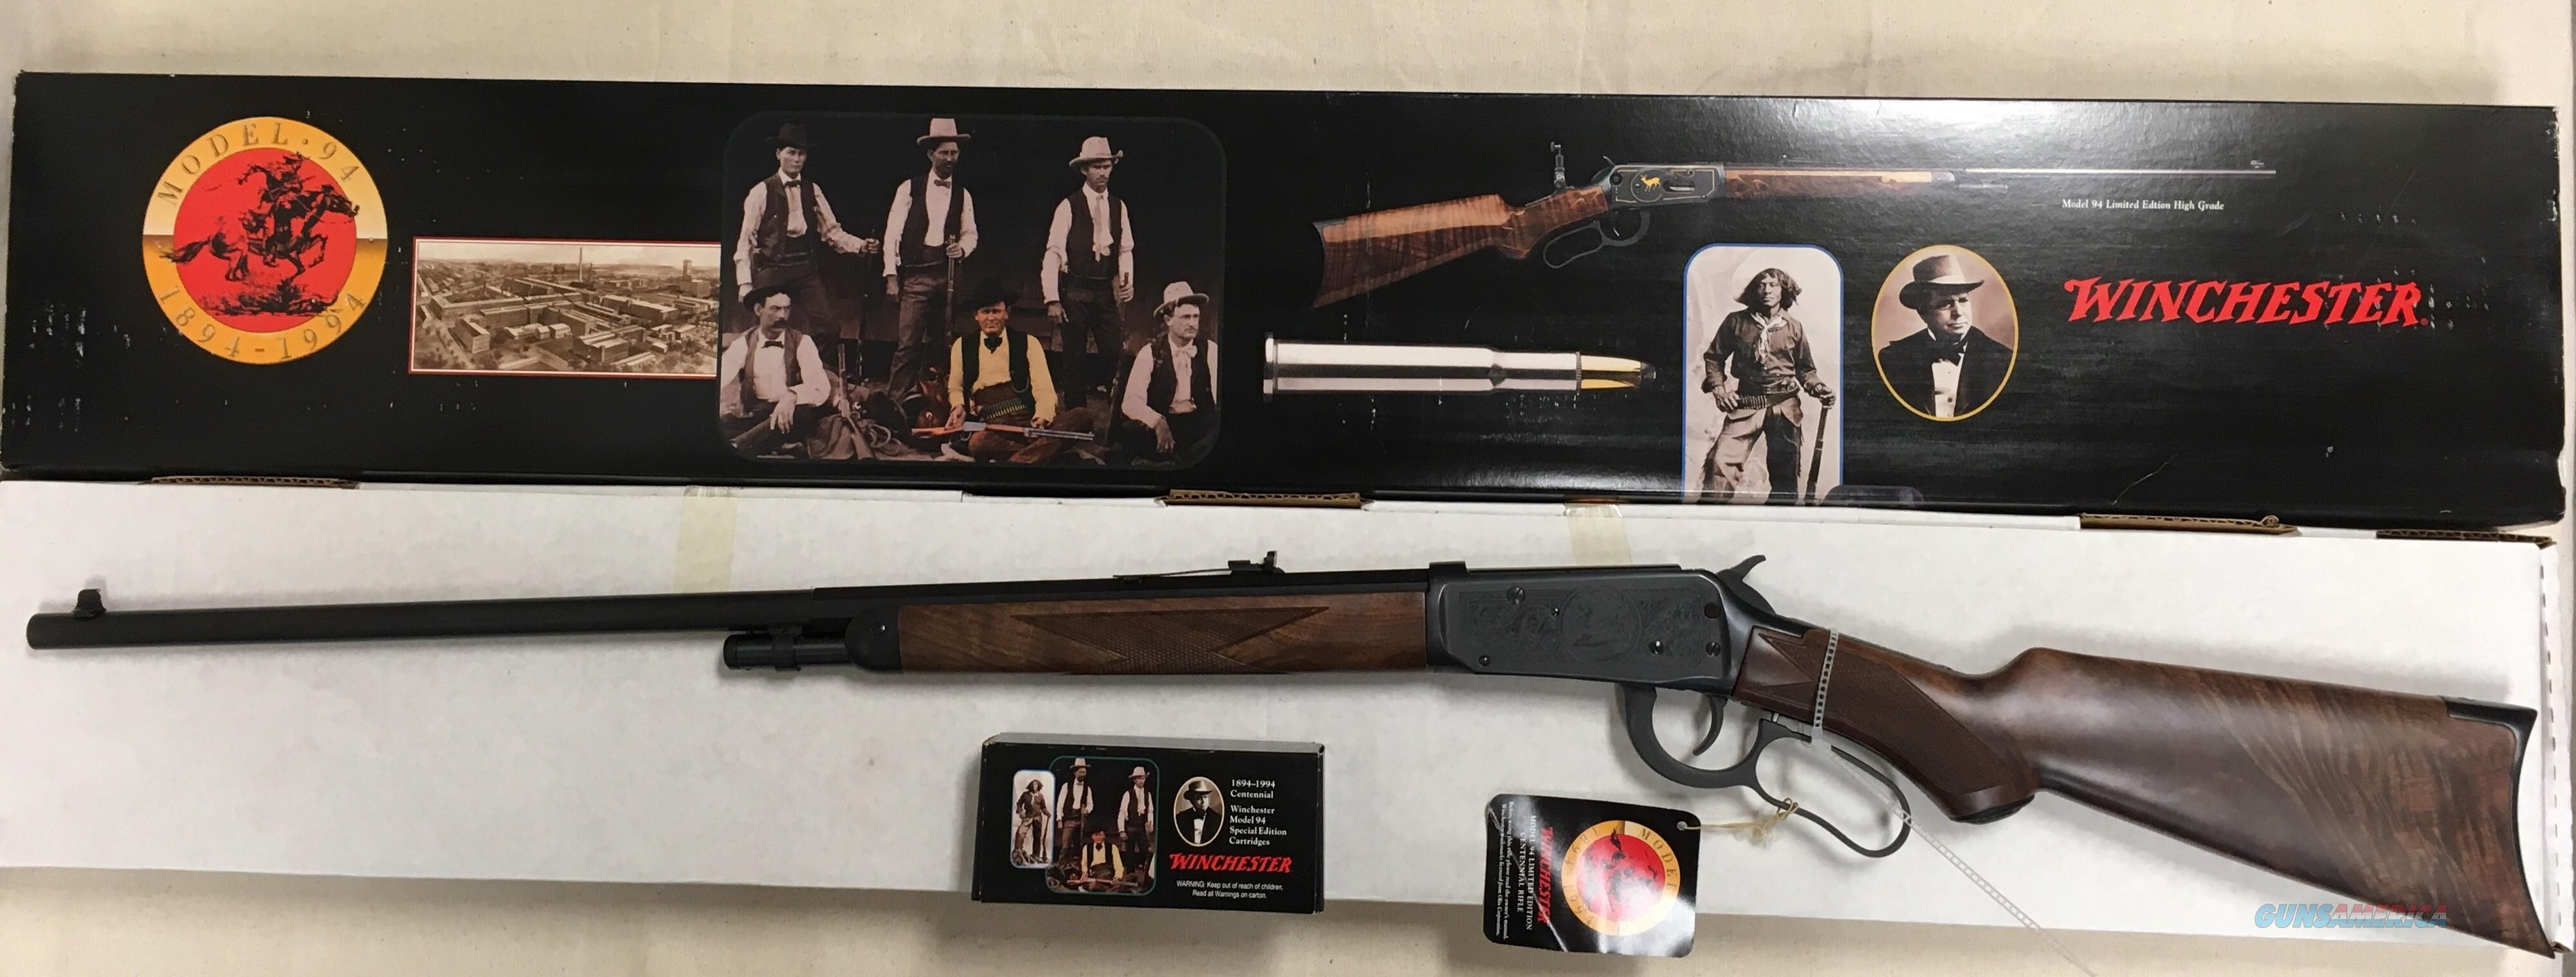 Winchester Grade I Limited Edition Centennial Rifle w/Box of Commemorative Box of Ammo  Guns > Rifles > Winchester Rifle Commemoratives